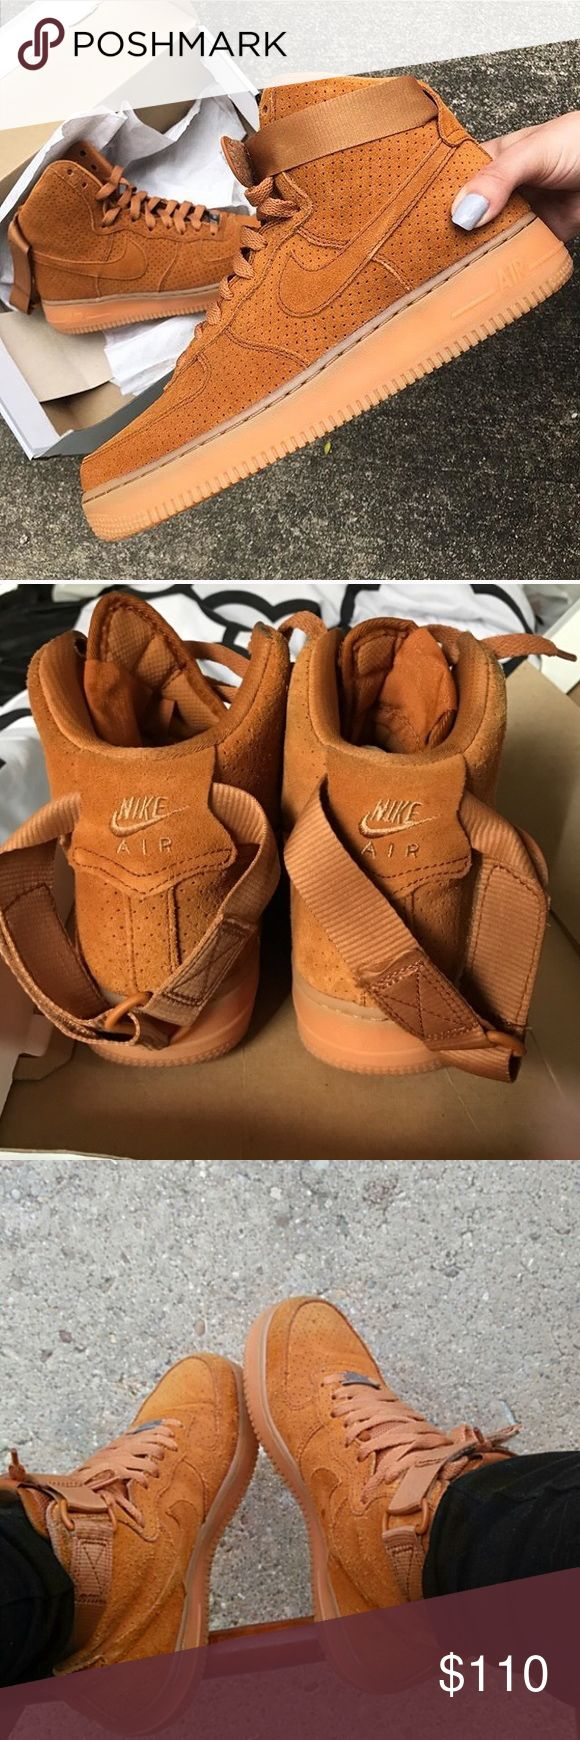 Nike |  Suede Air Force Ones  Nike Suede Air Force Ones Tawny/Camel Color   Perforated Super Comfortable High Top Gum Bottom Sole   Smoke Free Home  15% off of 4 or more bundled items! Nike Shoes Sneakers